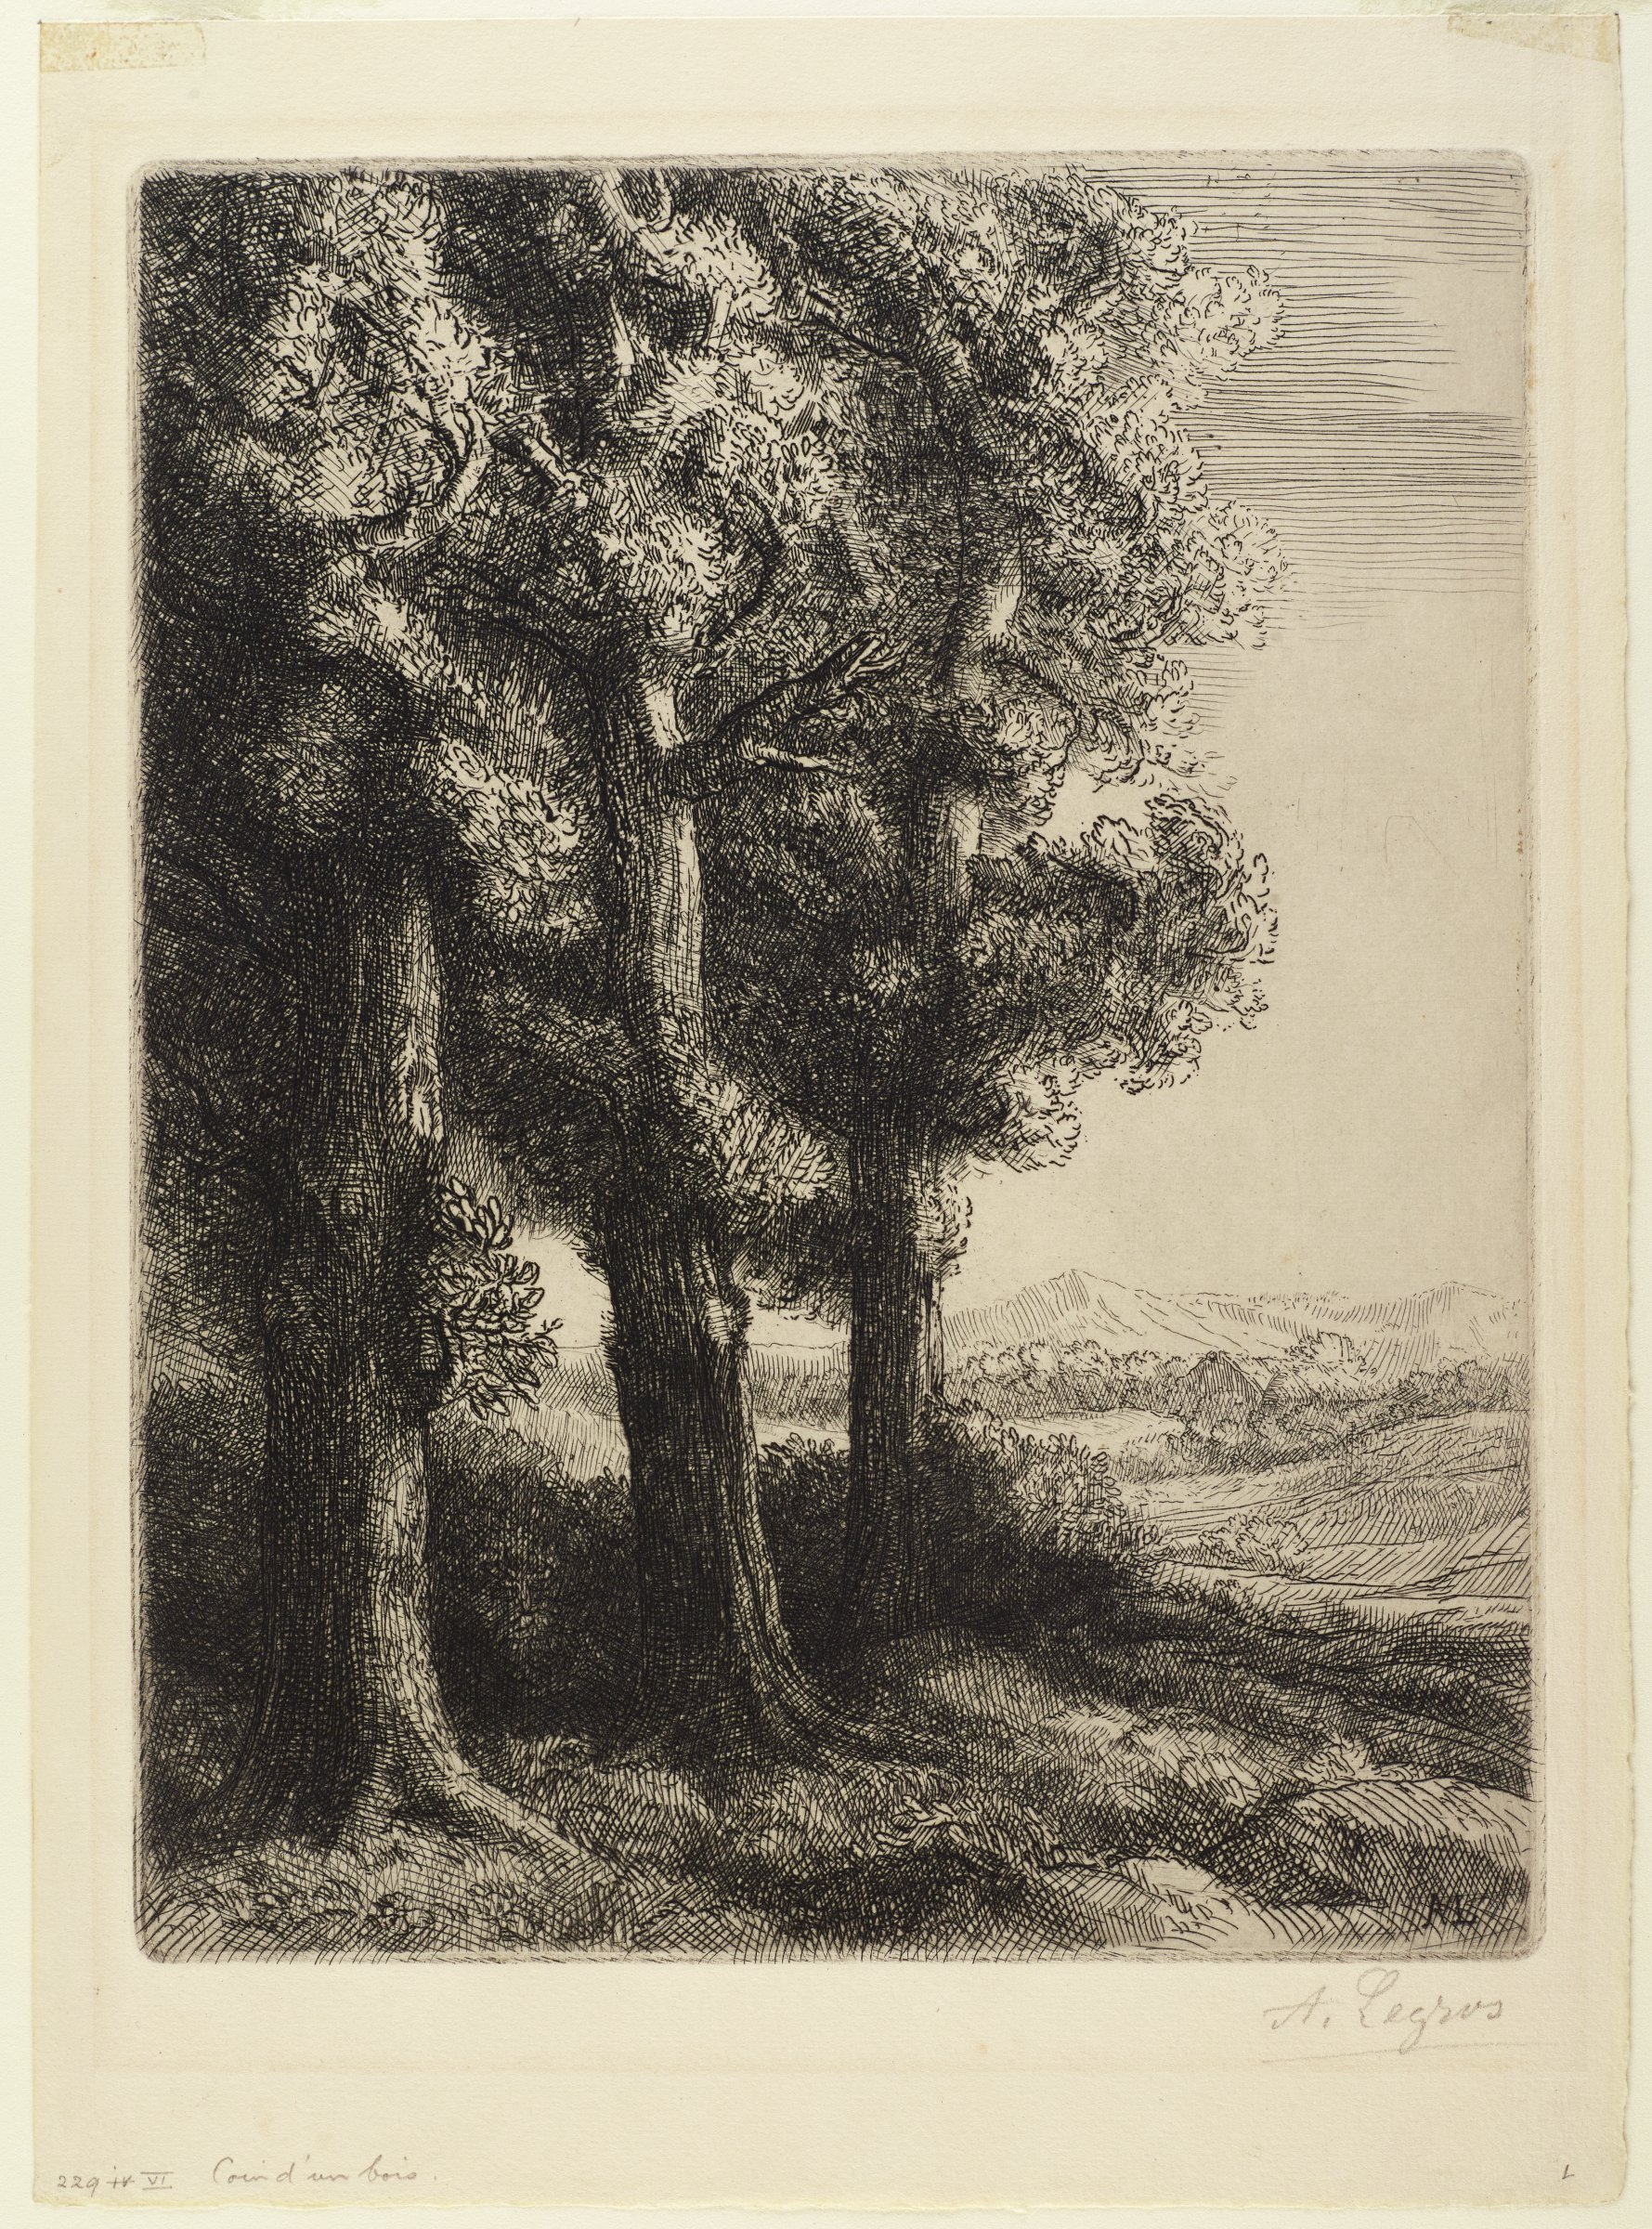 In the foreground stands a diagonal row of three trees. In the distance is a grassy plain, a large grove of trees, and a mountain top.